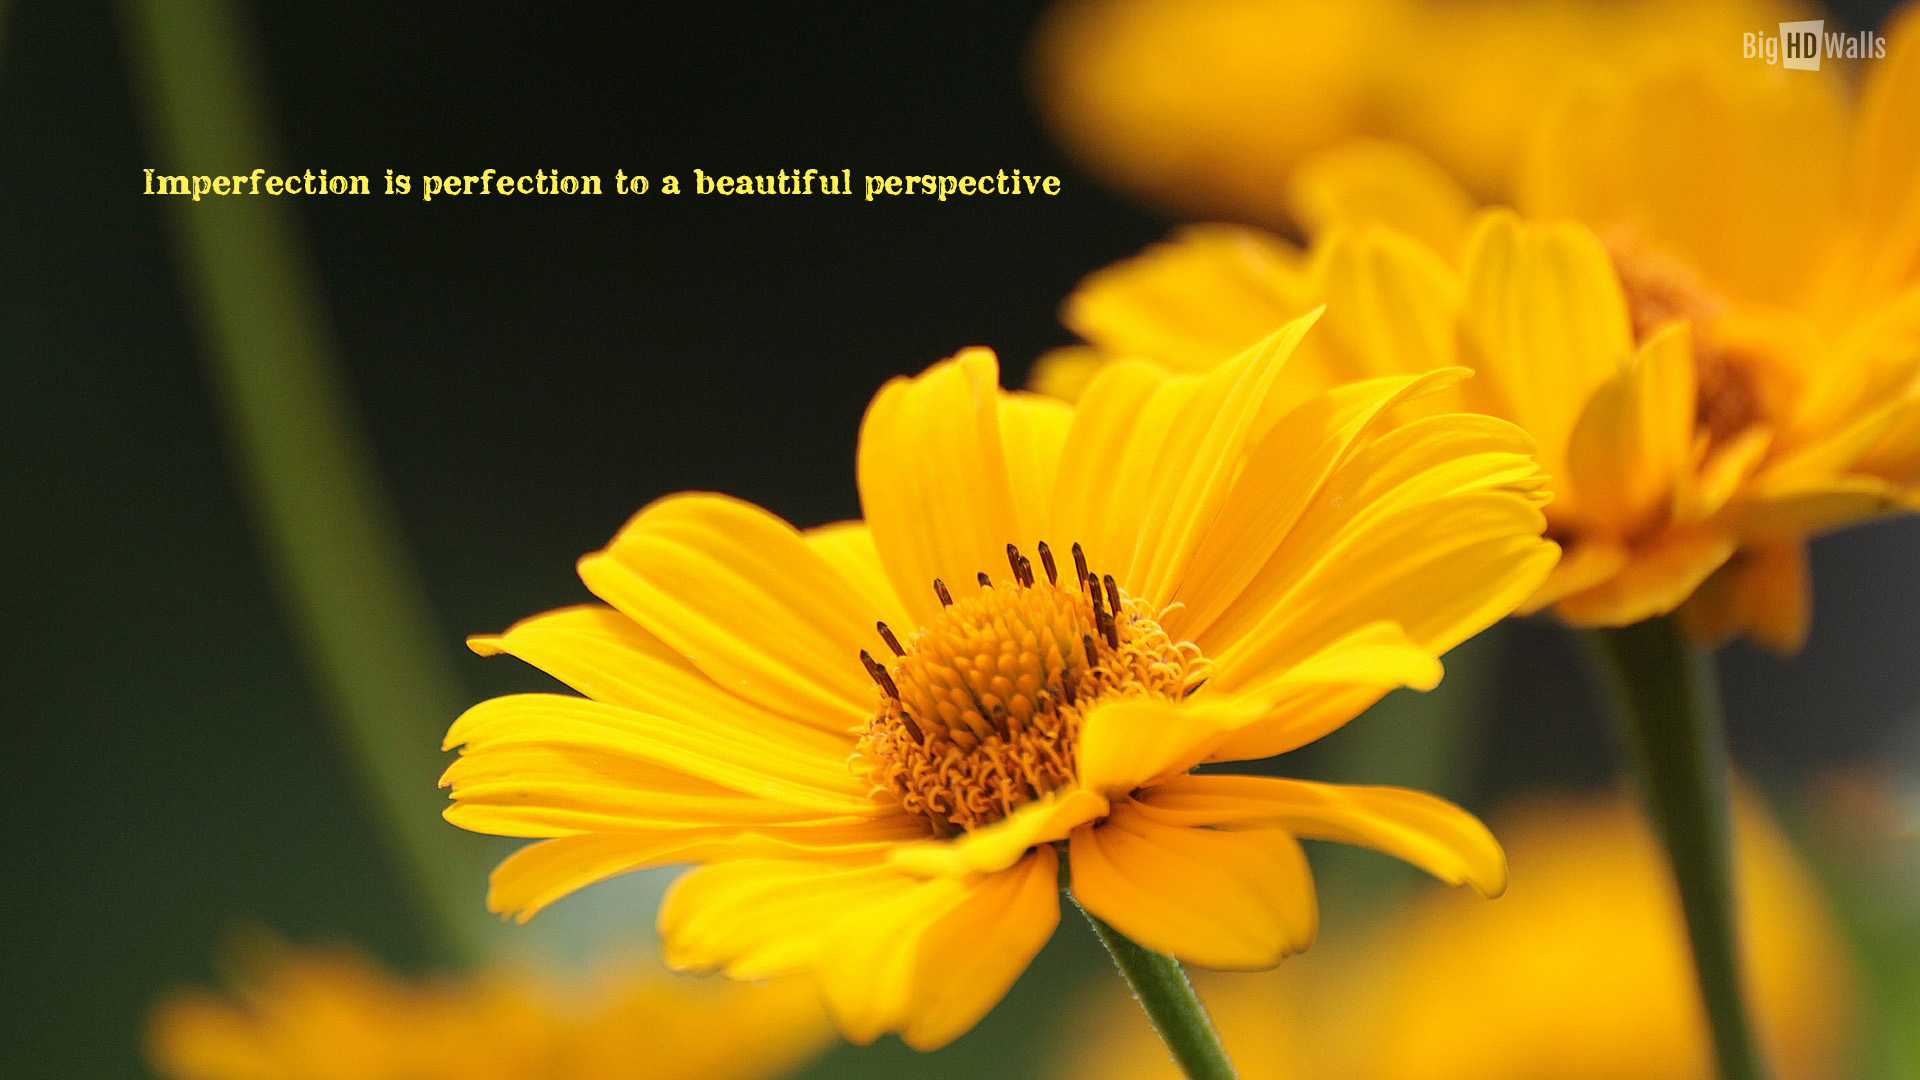 Beautiful yellow flower with an awesome quote Click on image to 1920x1080